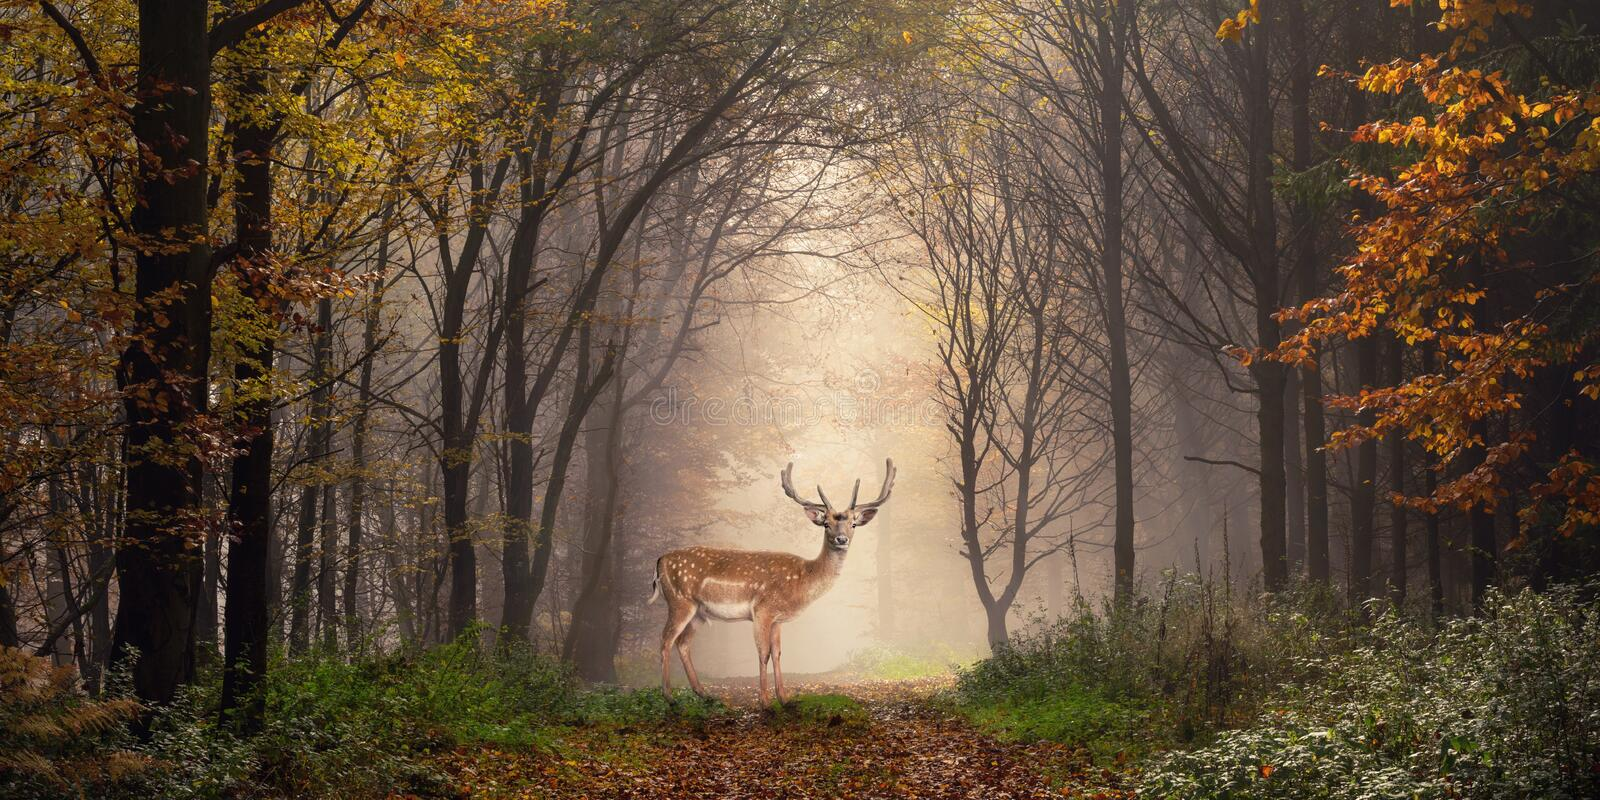 Fallow deer in a dreamy forest scene. Fallow deer standing in a dreamy misty forest, with beautiful moody light in the middle and framed by darker trees royalty free stock photography